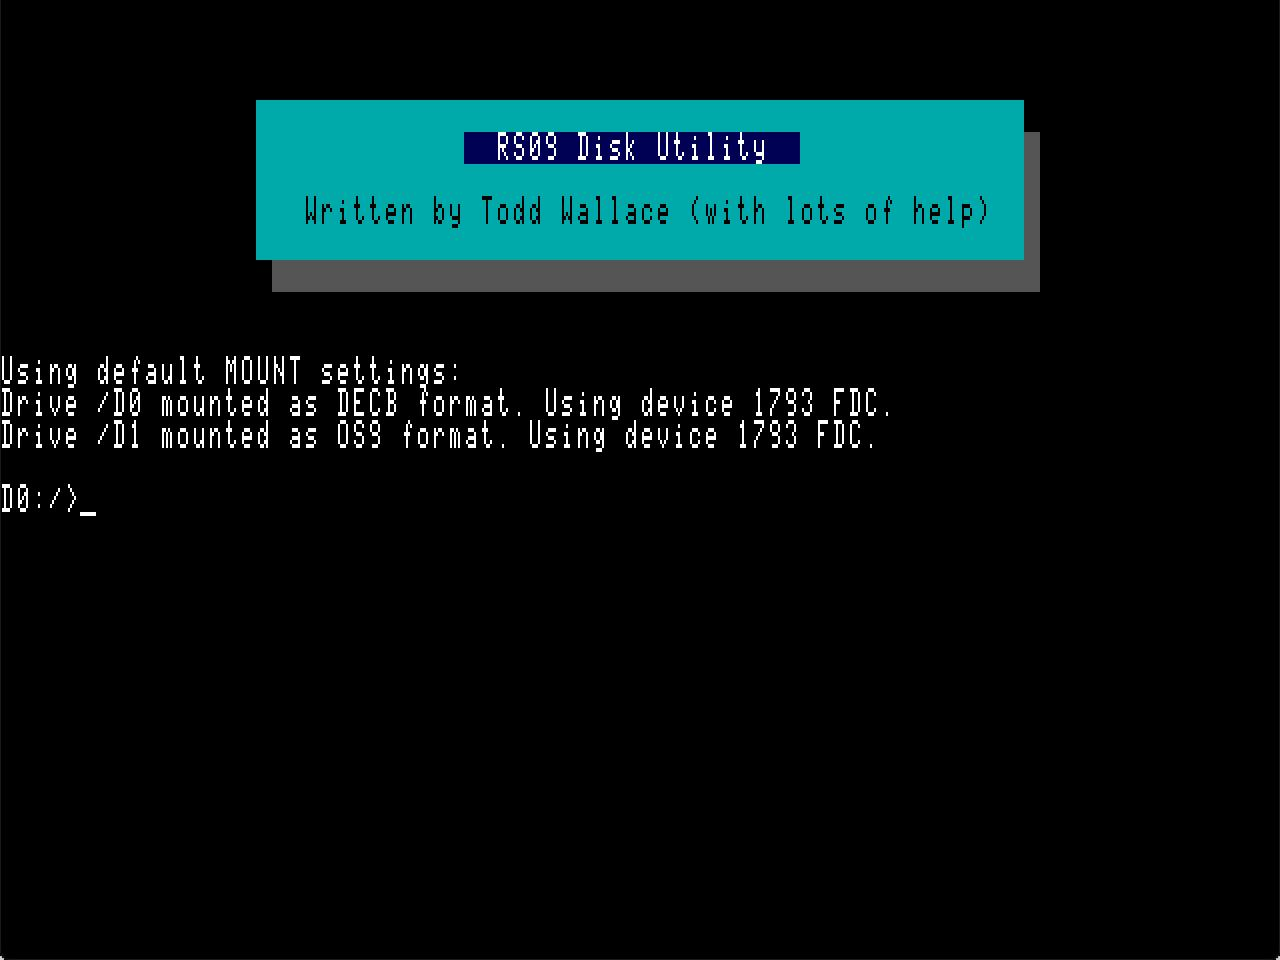 My Disk Utility Project for the Tandy Color Computer